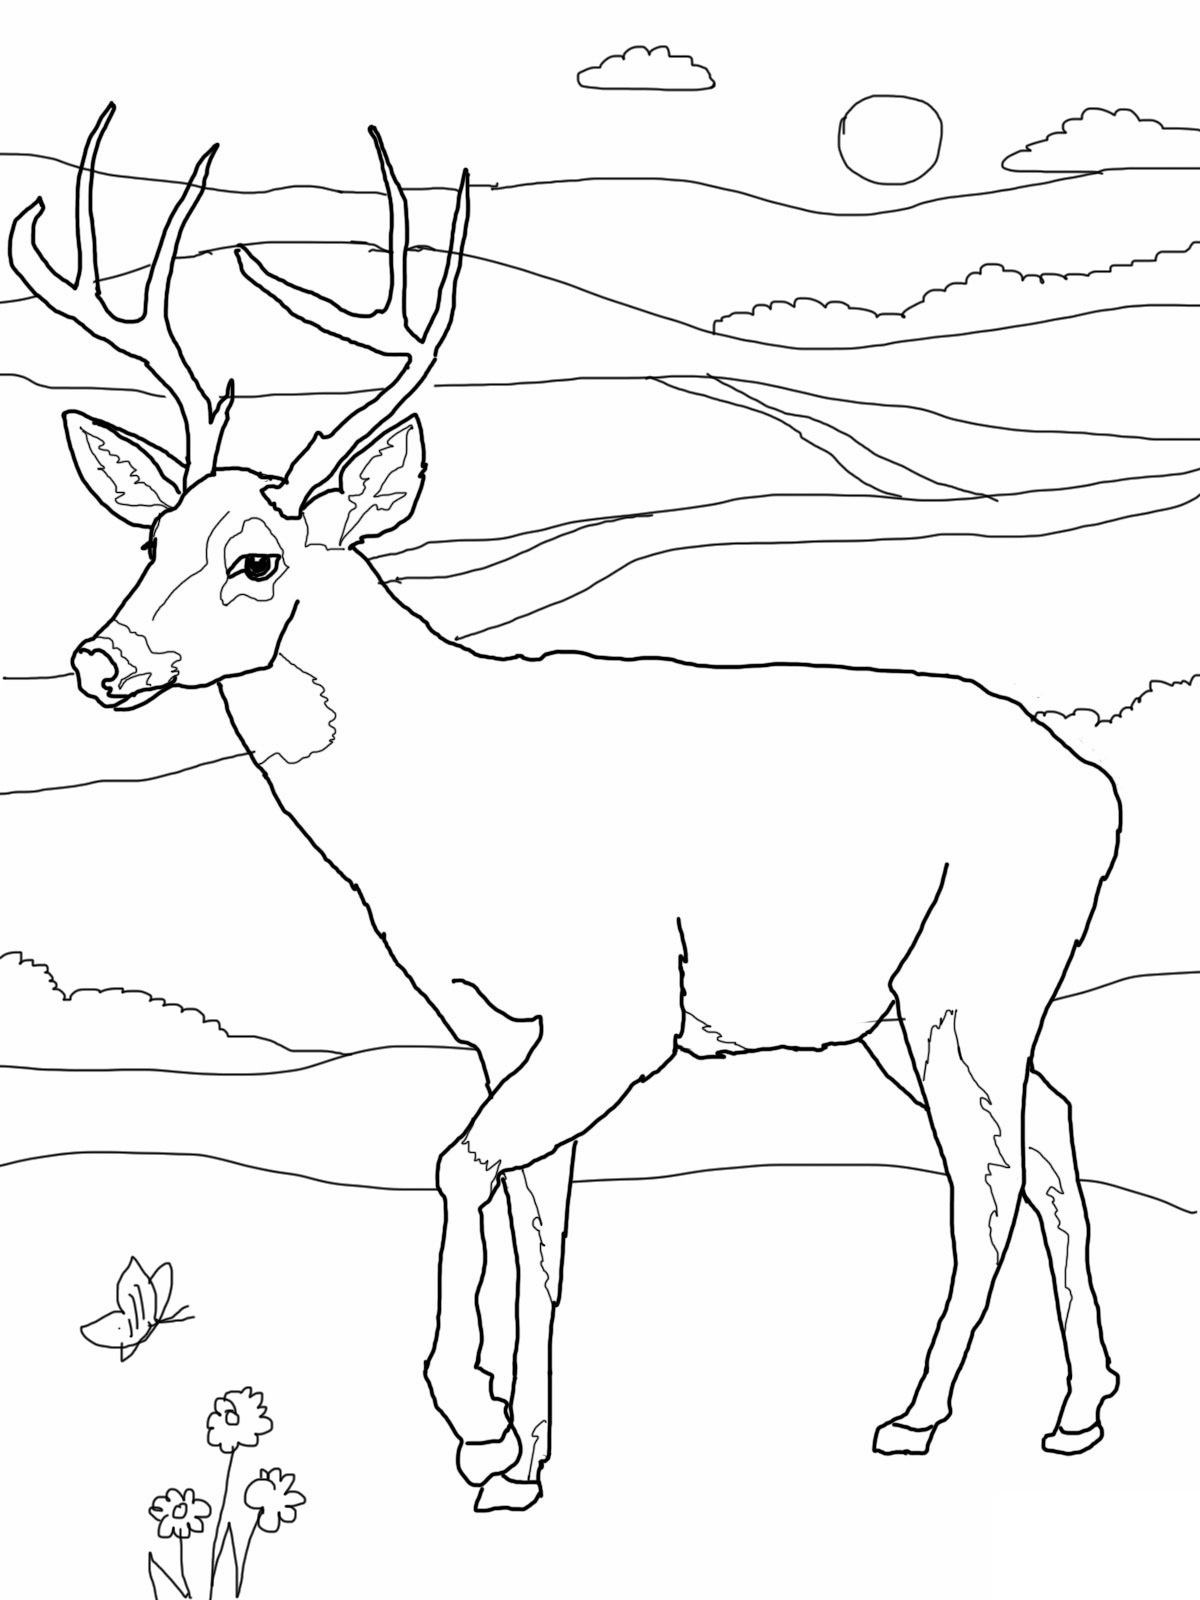 Christmas Reindeer Face coloring page | Free Printable Coloring Pages | 1600x1200